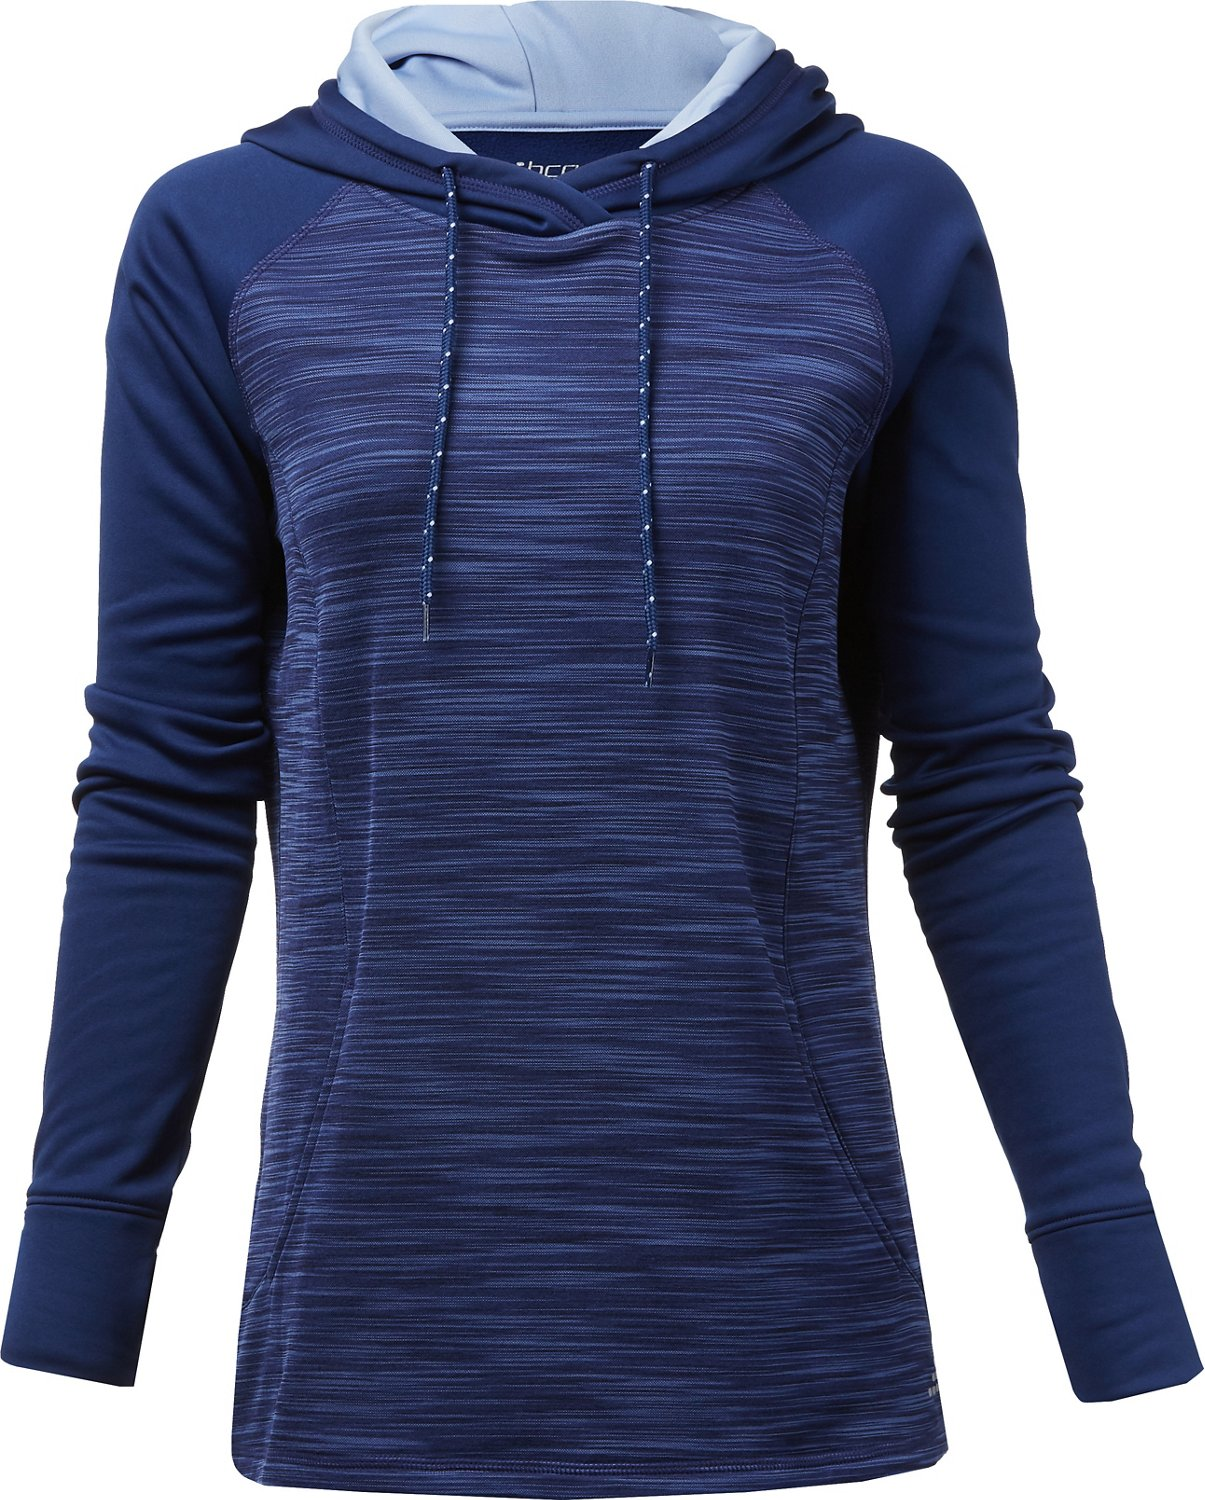 premium selection 39119 4074d Display product reviews for BCG Women s Melange Pullover Fleece